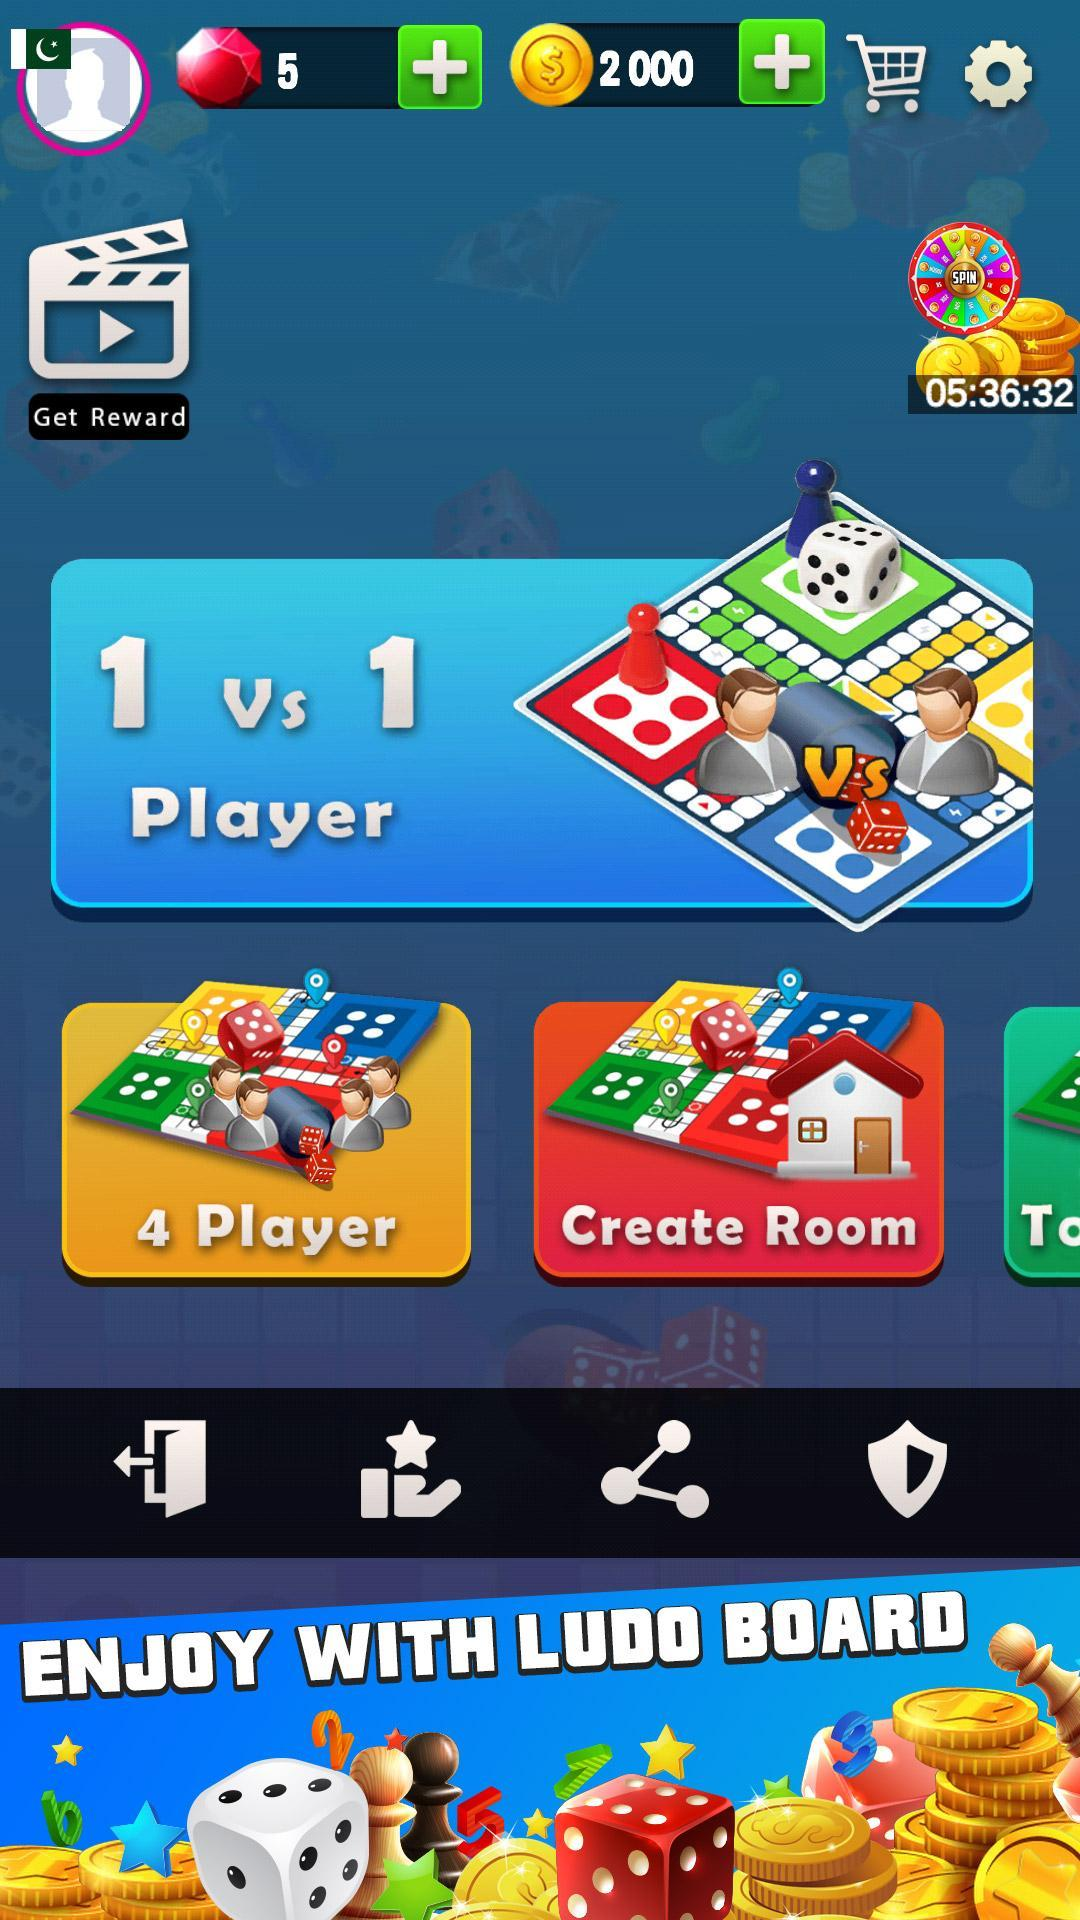 King of Ludo Dice Game with Free Voice Chat 2020 1.5.2 Screenshot 6